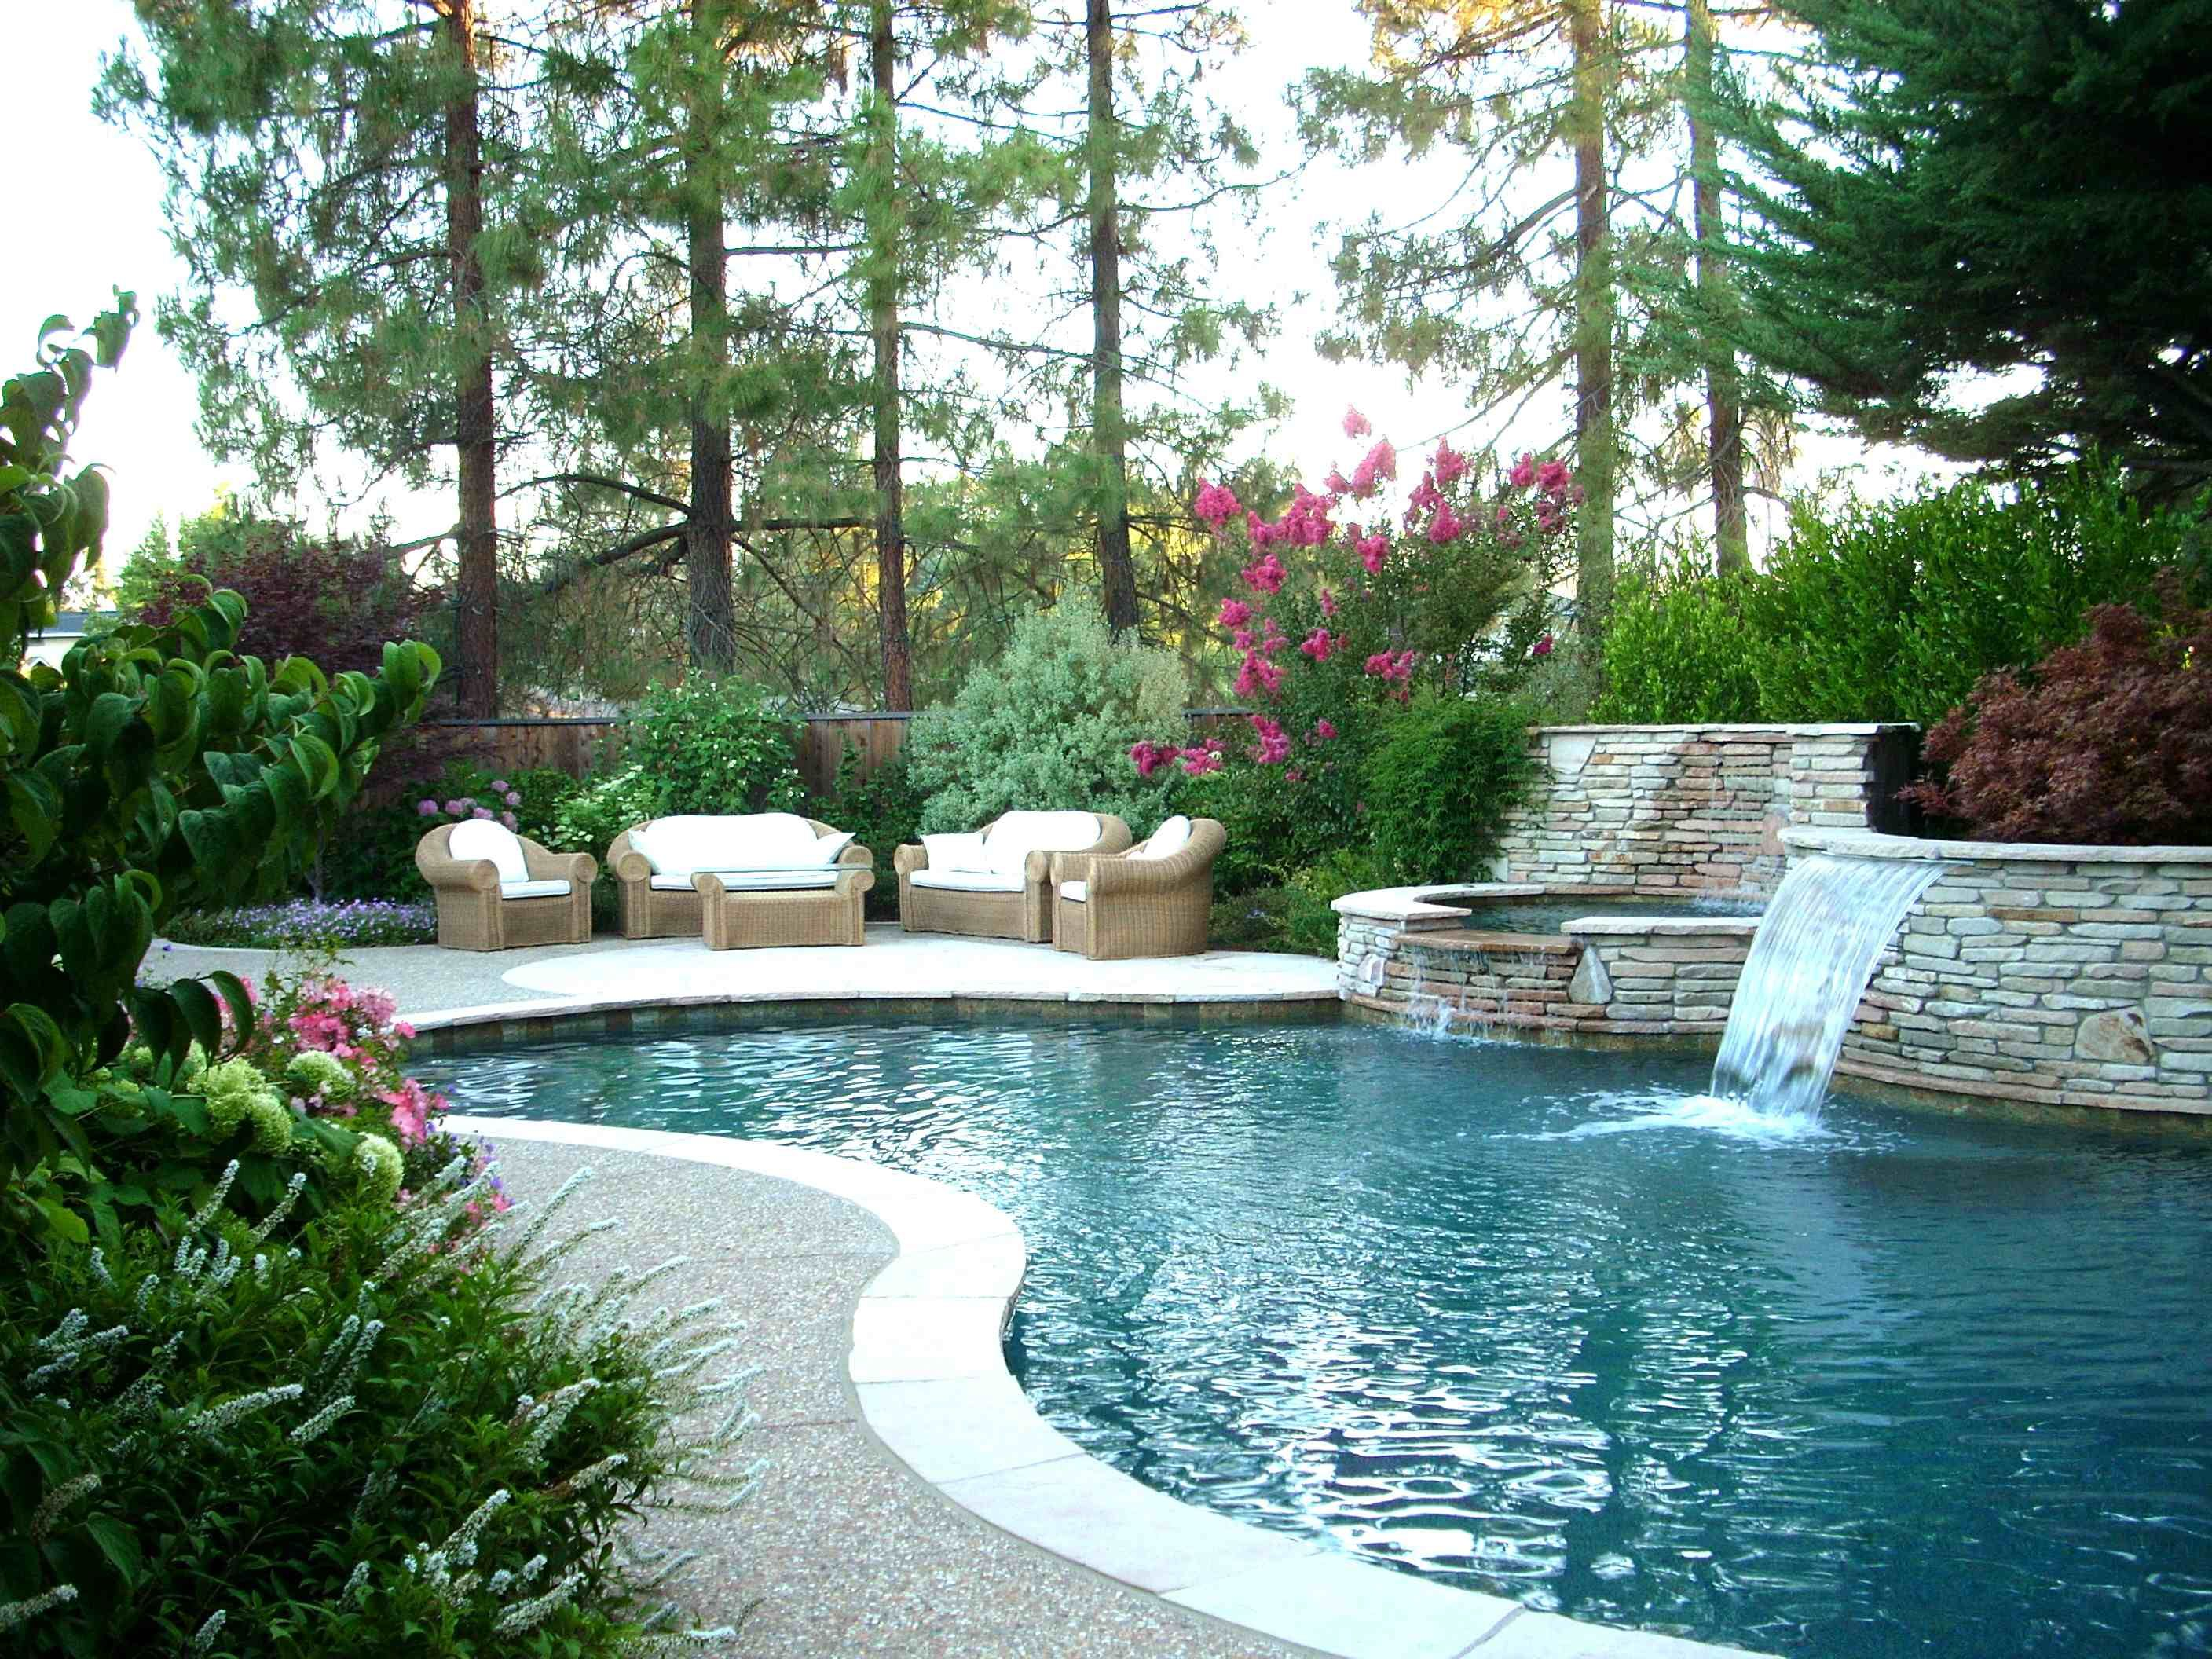 Landscaped pool pictures landscape design ideas for for Pool landscape design ideas